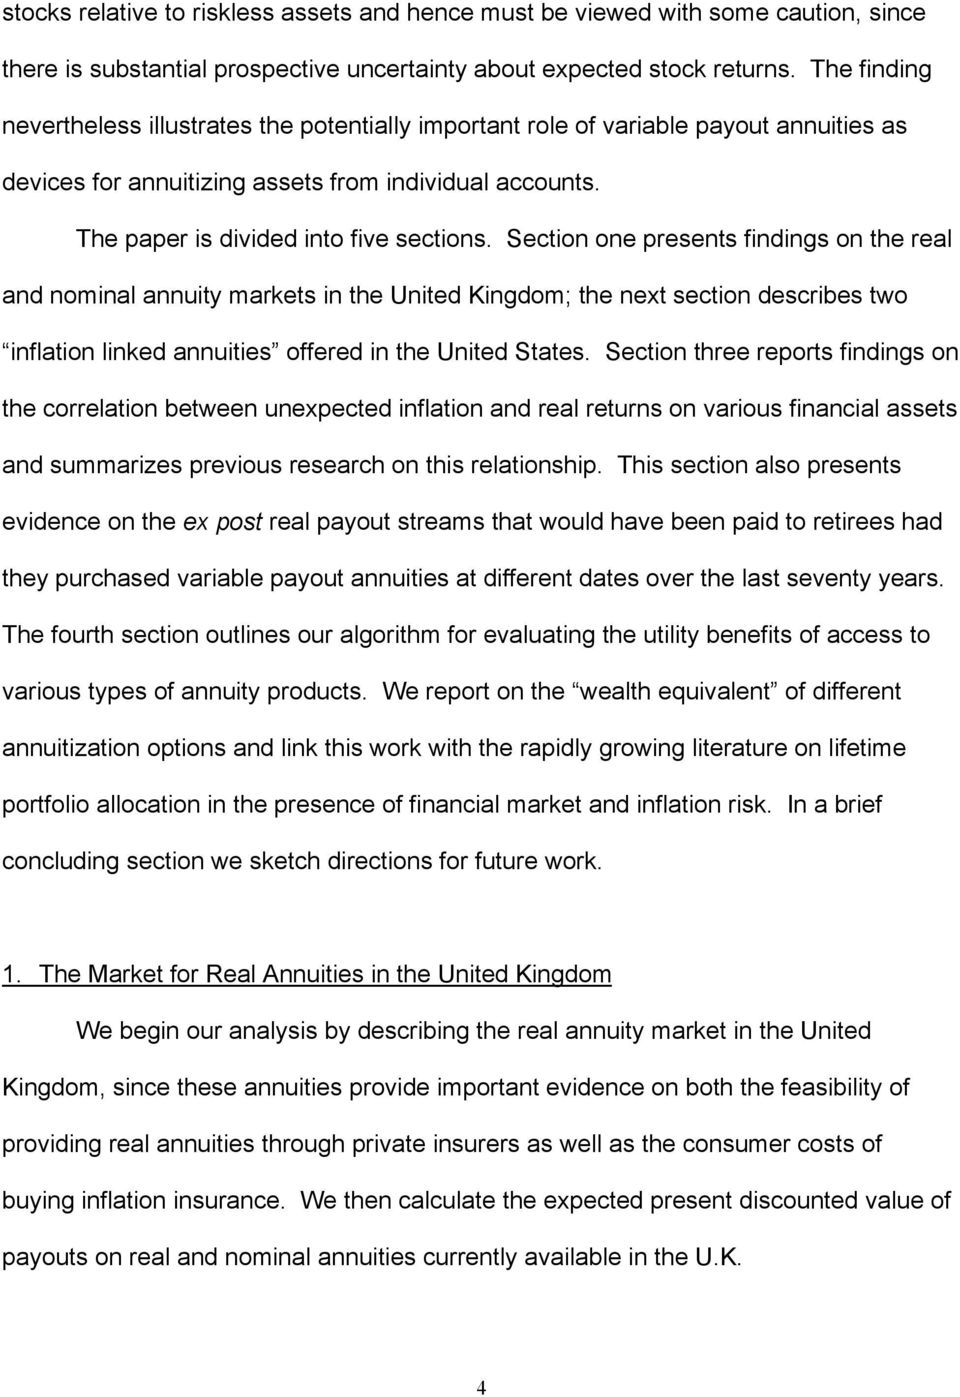 Section one presents findings on the real and nominal annuity markets in the United Kingdom; the next section describes two inflation linked annuities offered in the United States.